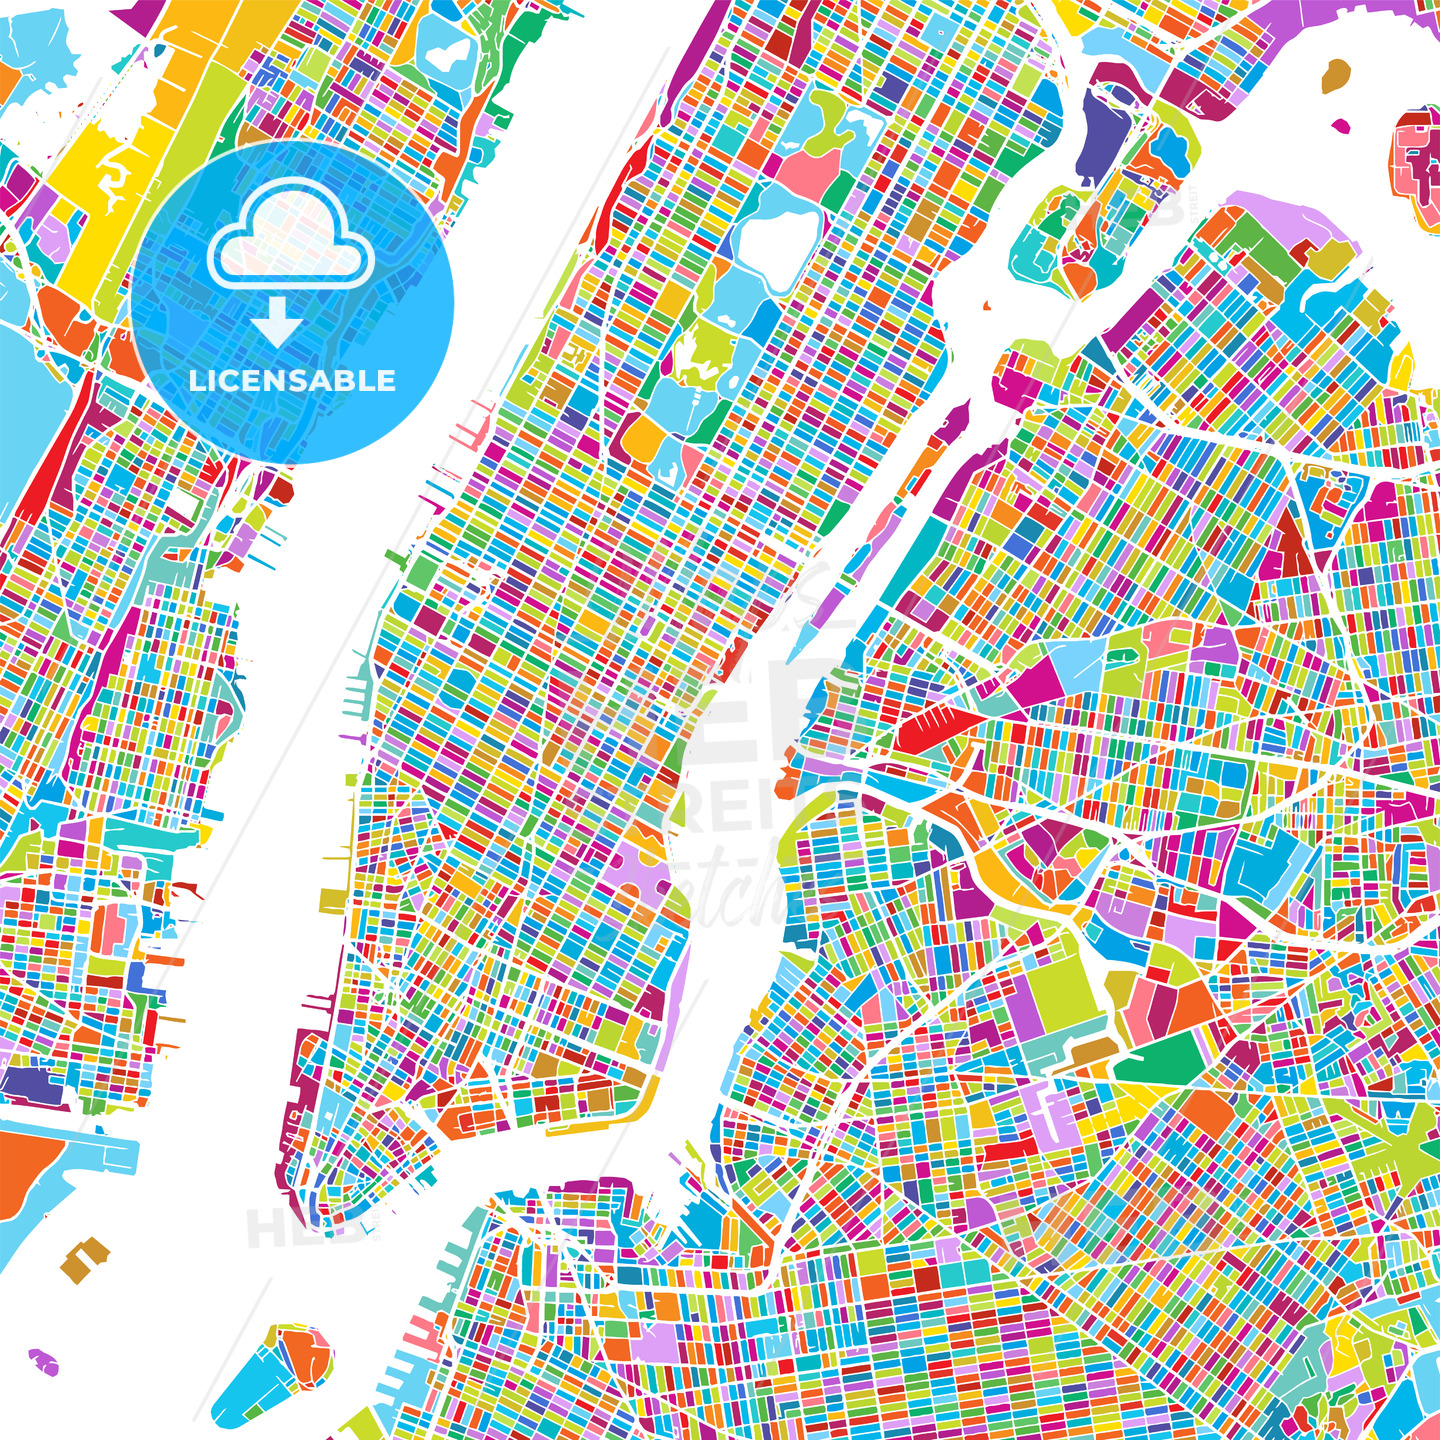 New York City Manhattan Colorful Map - HEBSTREIT's Sketches